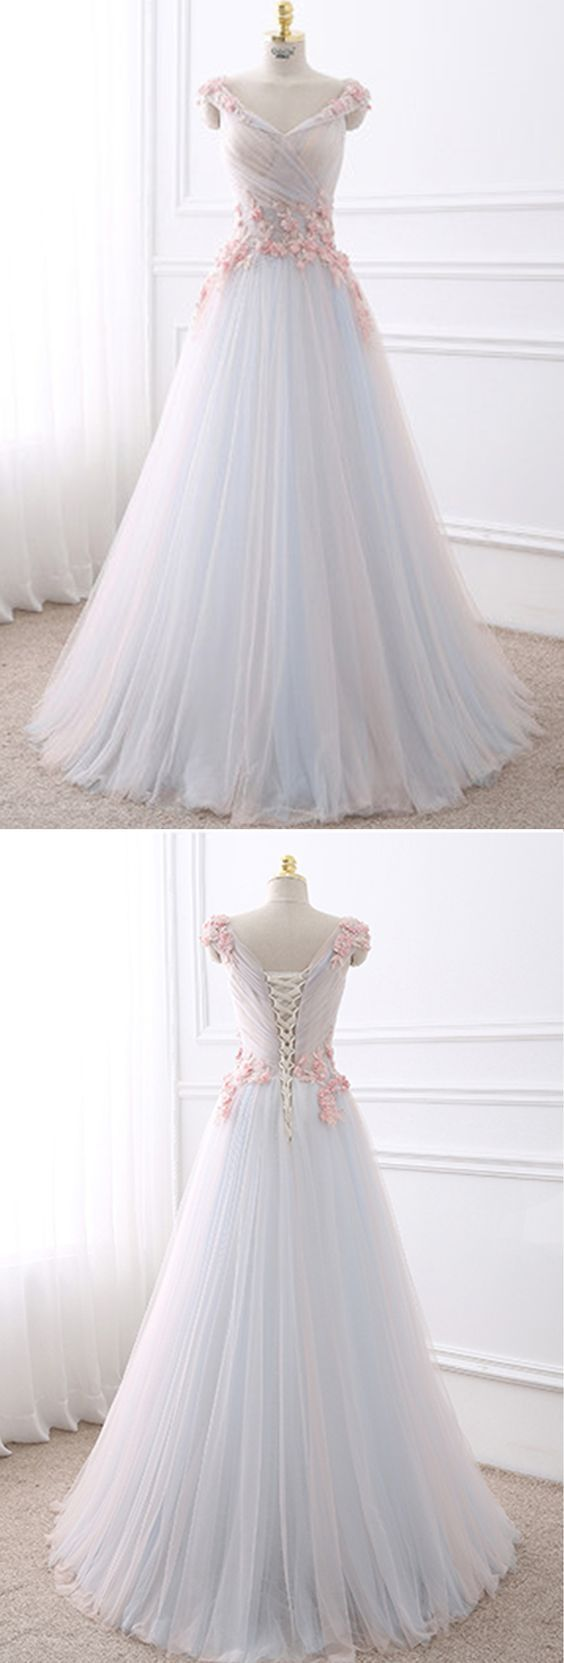 Cinderella wedding dress disney store  Pin by That Rabbit on I Wish to be Queen  Pinterest  Dresses